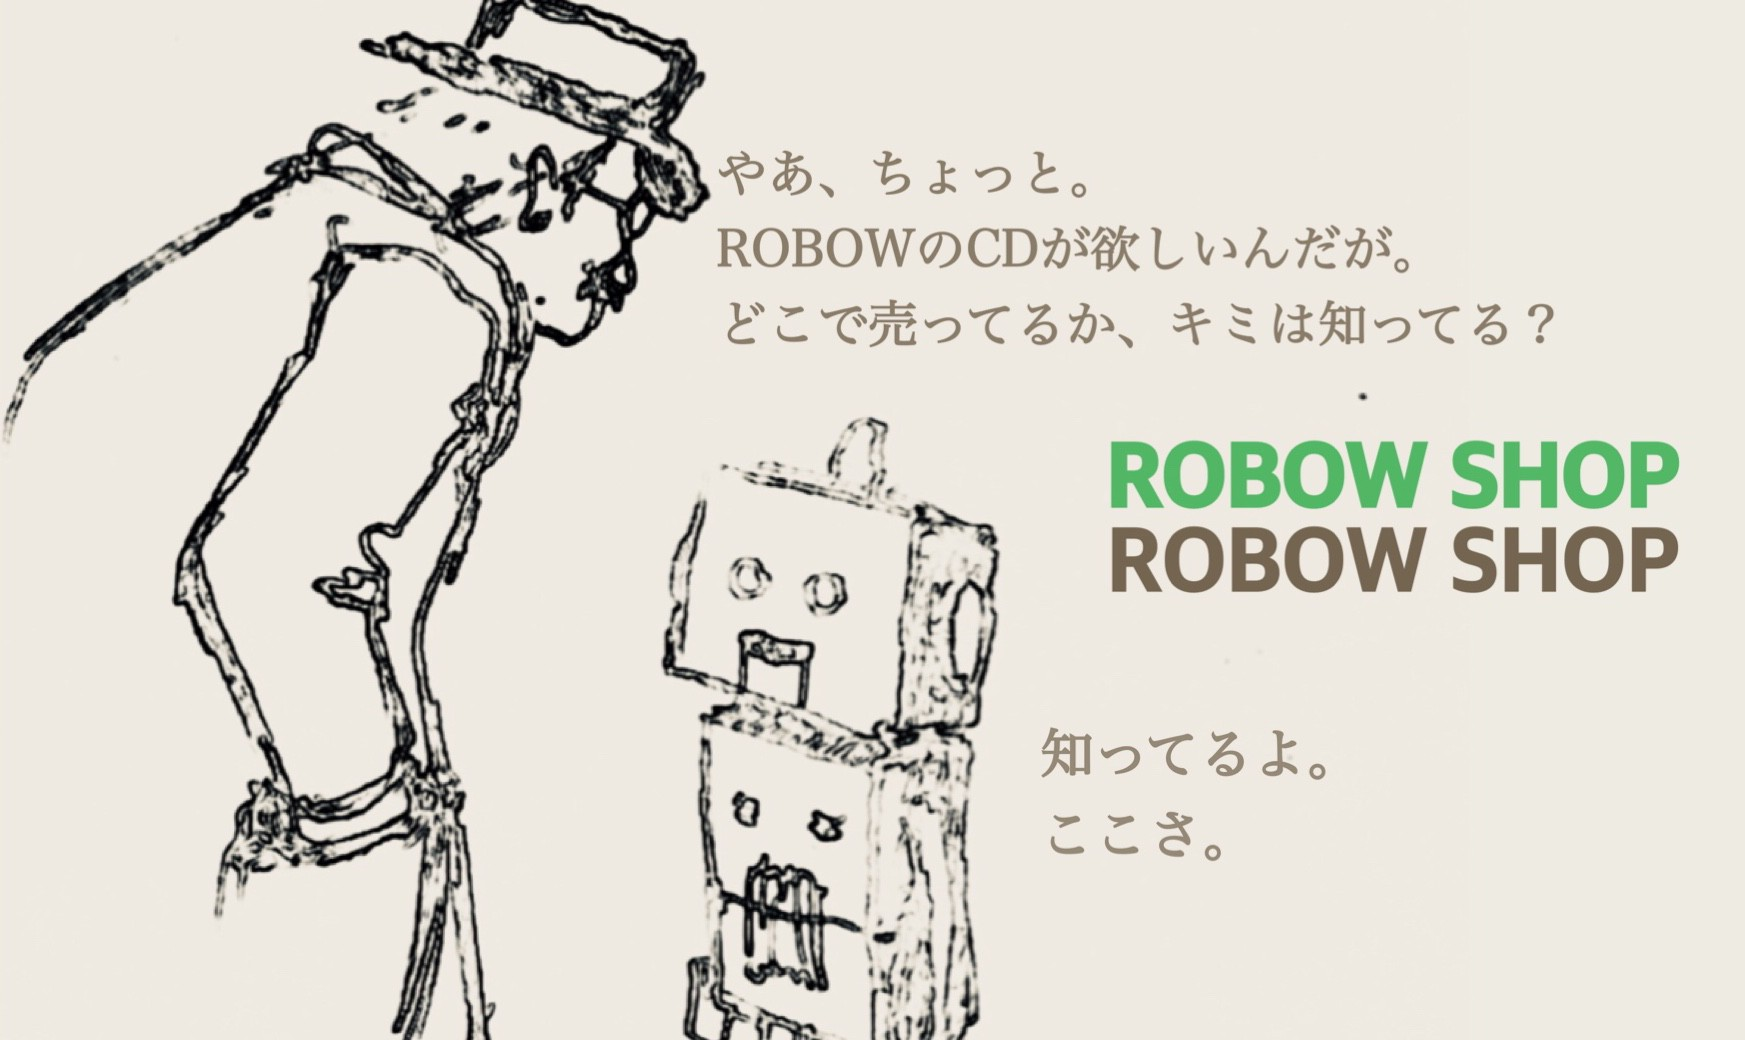 ROBOW SHOP